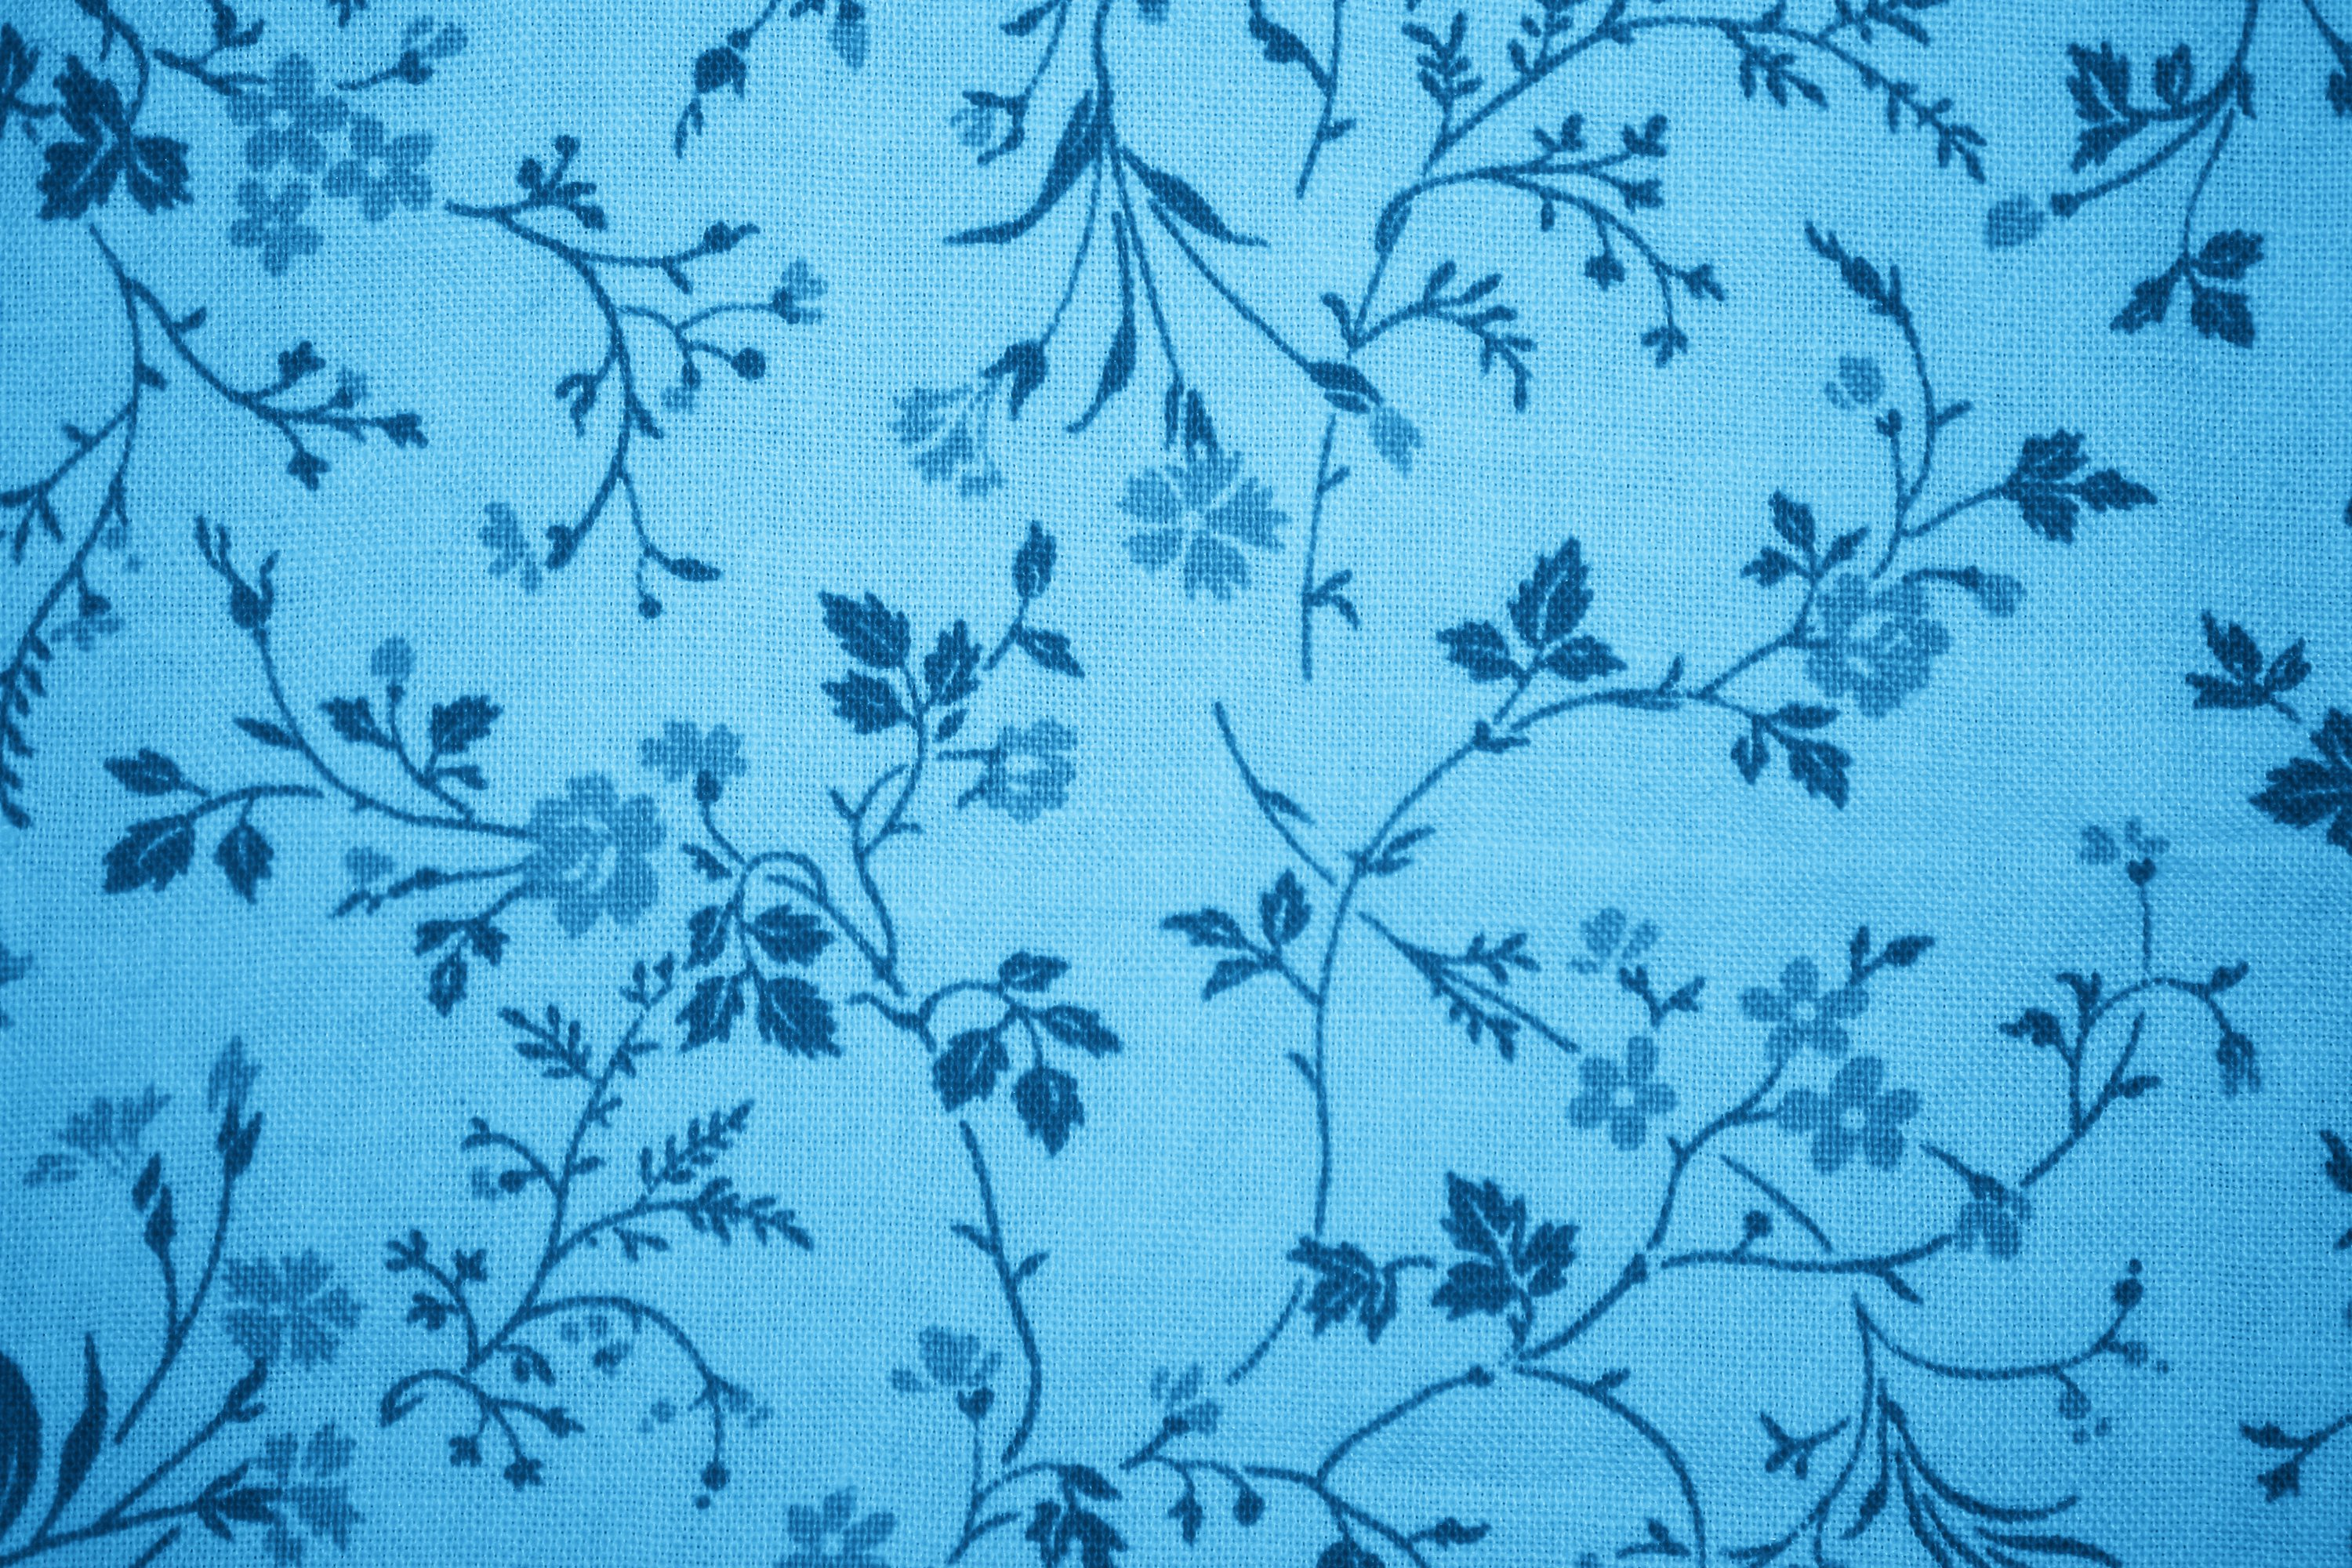 Sky Blue Floral Print Fabric Texture